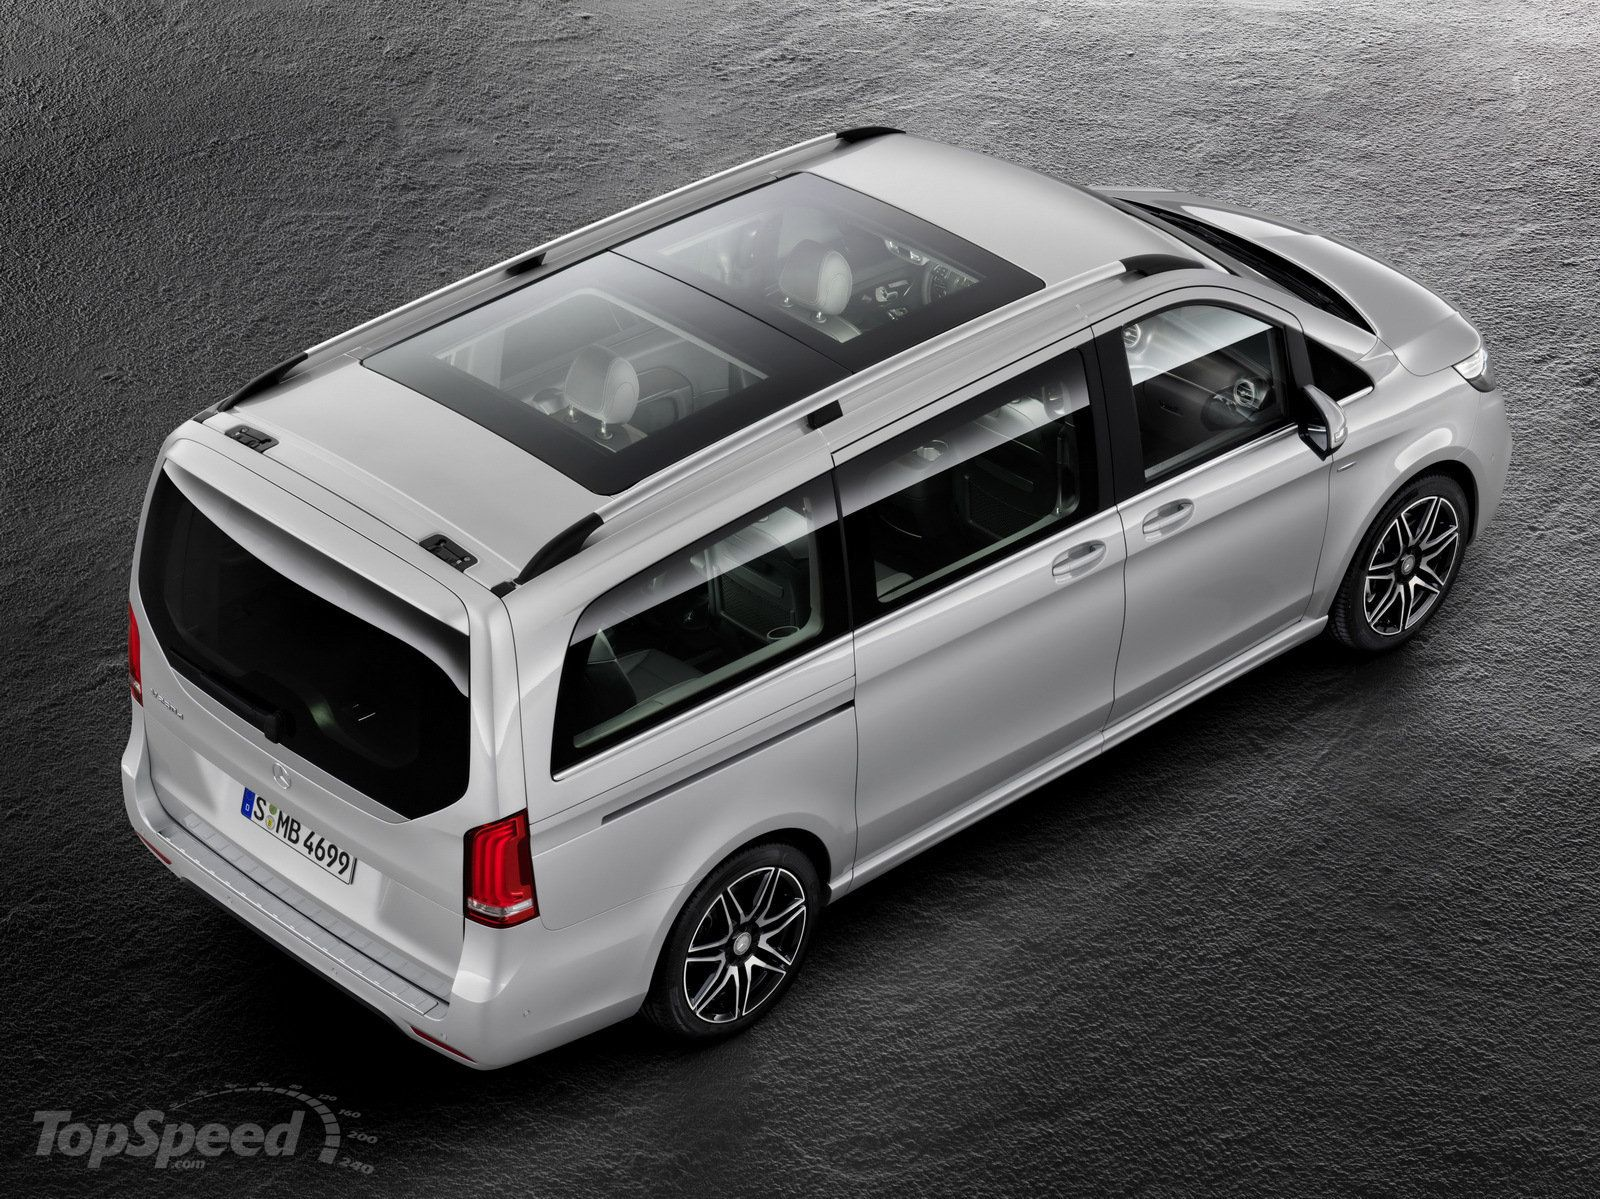 Mercedes v class gets full treatment from carlex design - 2016 Mercedes Benz V Class Amg Line Picture Doc643488